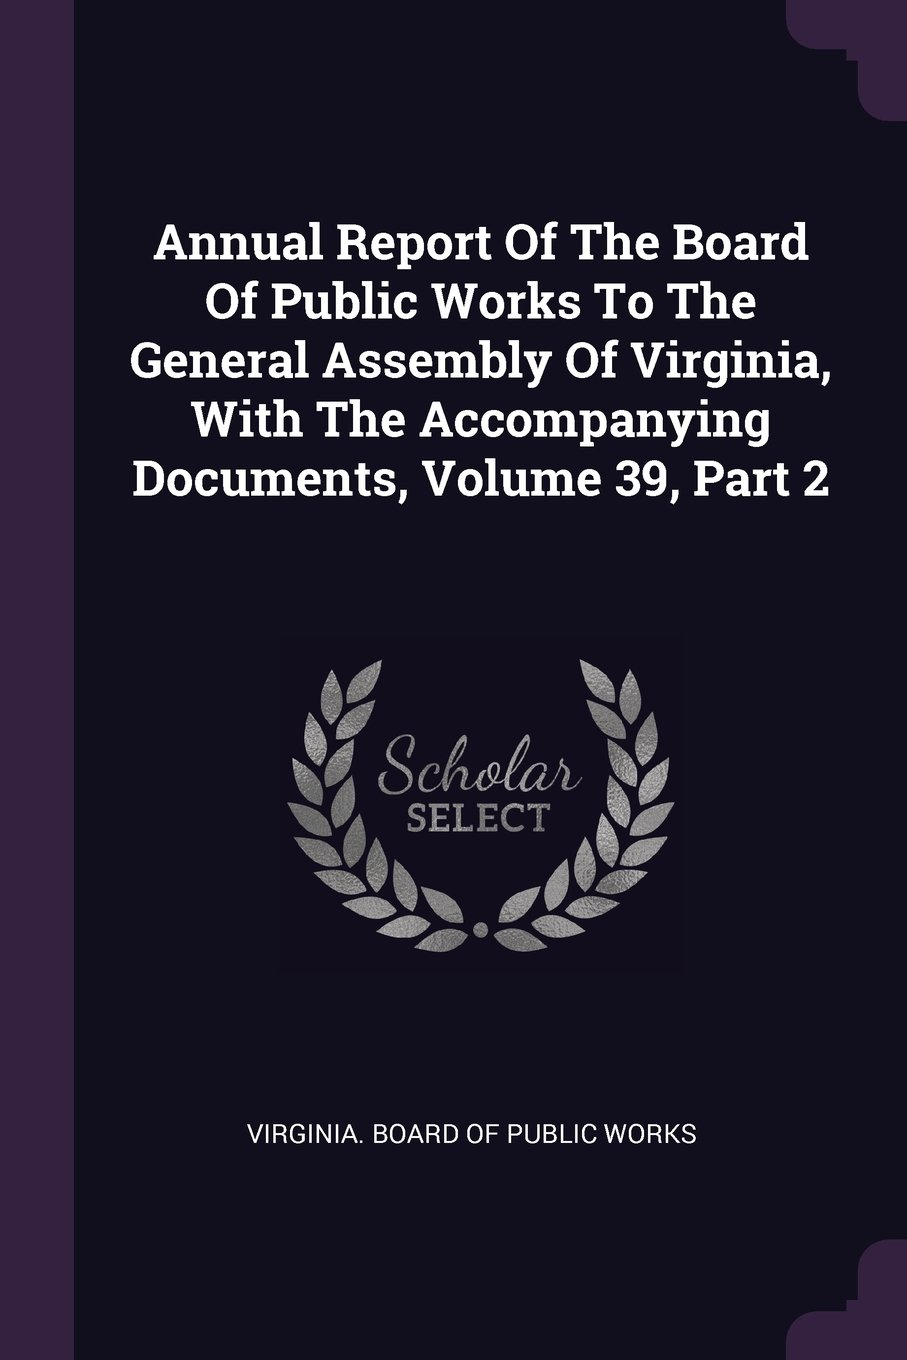 Annual Report Of The Board Of Public Works To The General Assembly Of Virginia, With The Accompanying Documents, Volume 39, Part 2 pdf